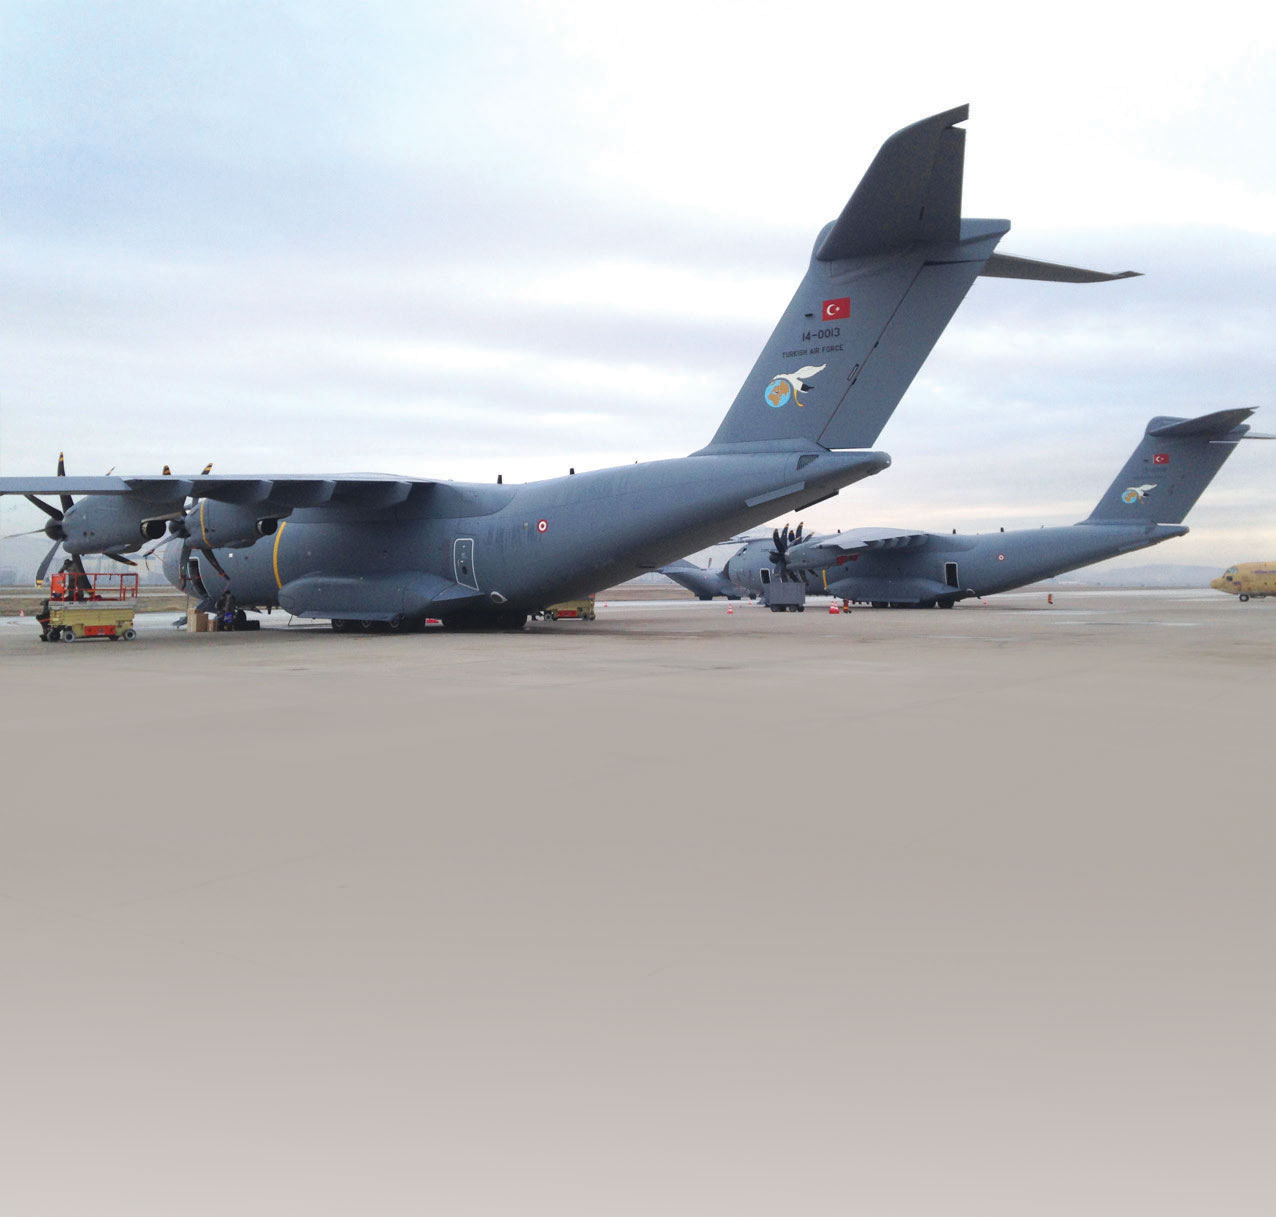 Second A400M was Delivered to TurAF